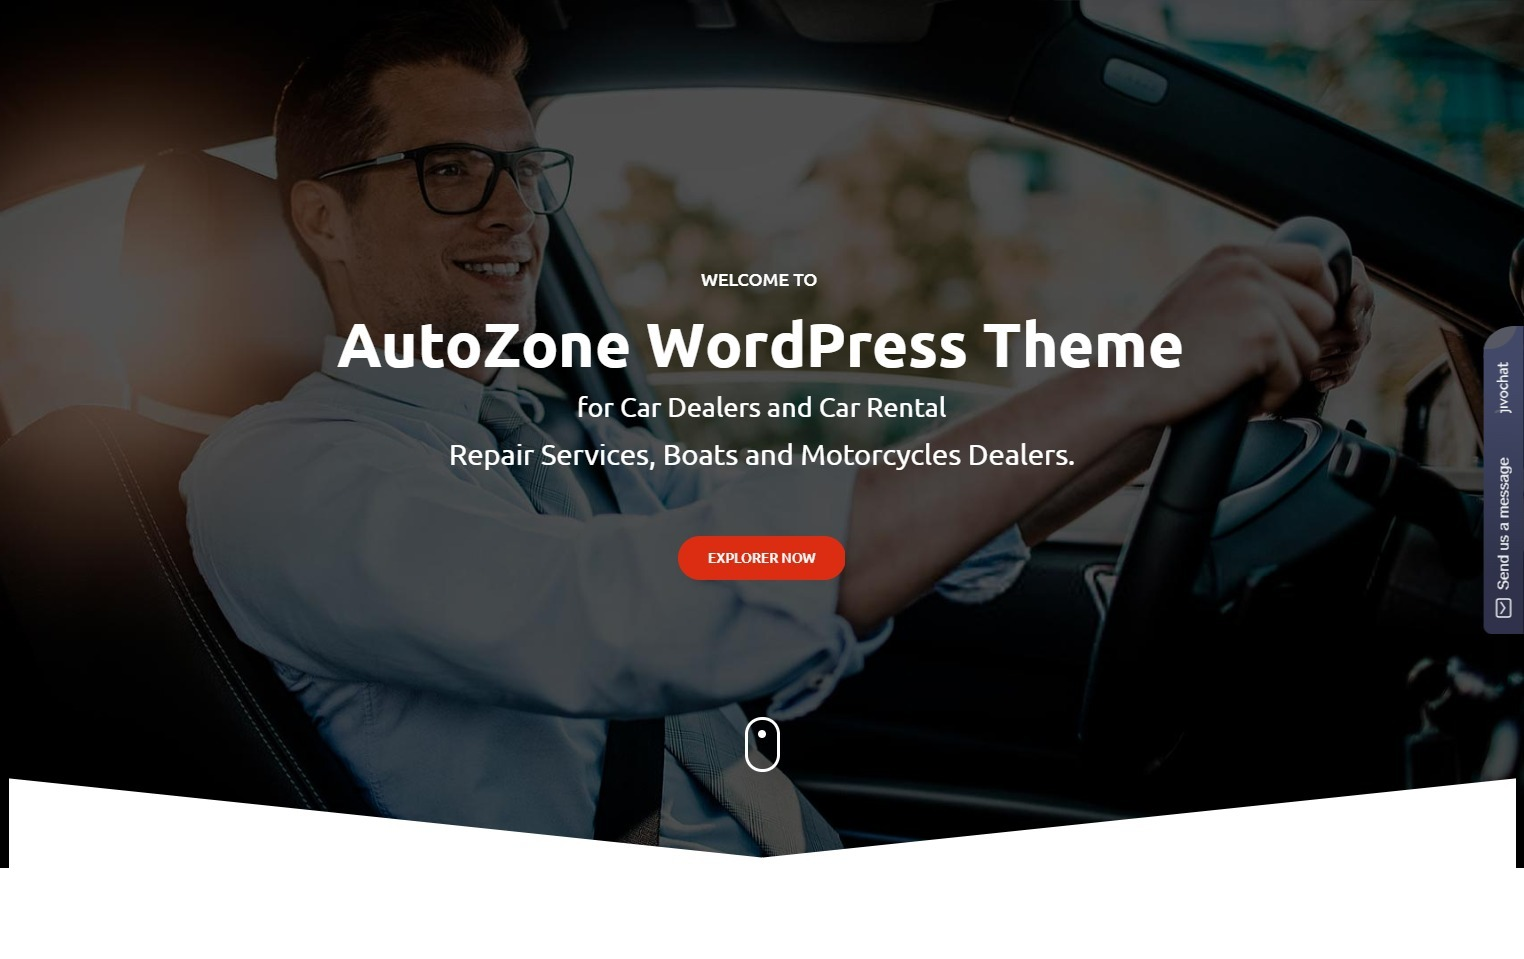 Autozone Full Service Autodealership WordPress Theme